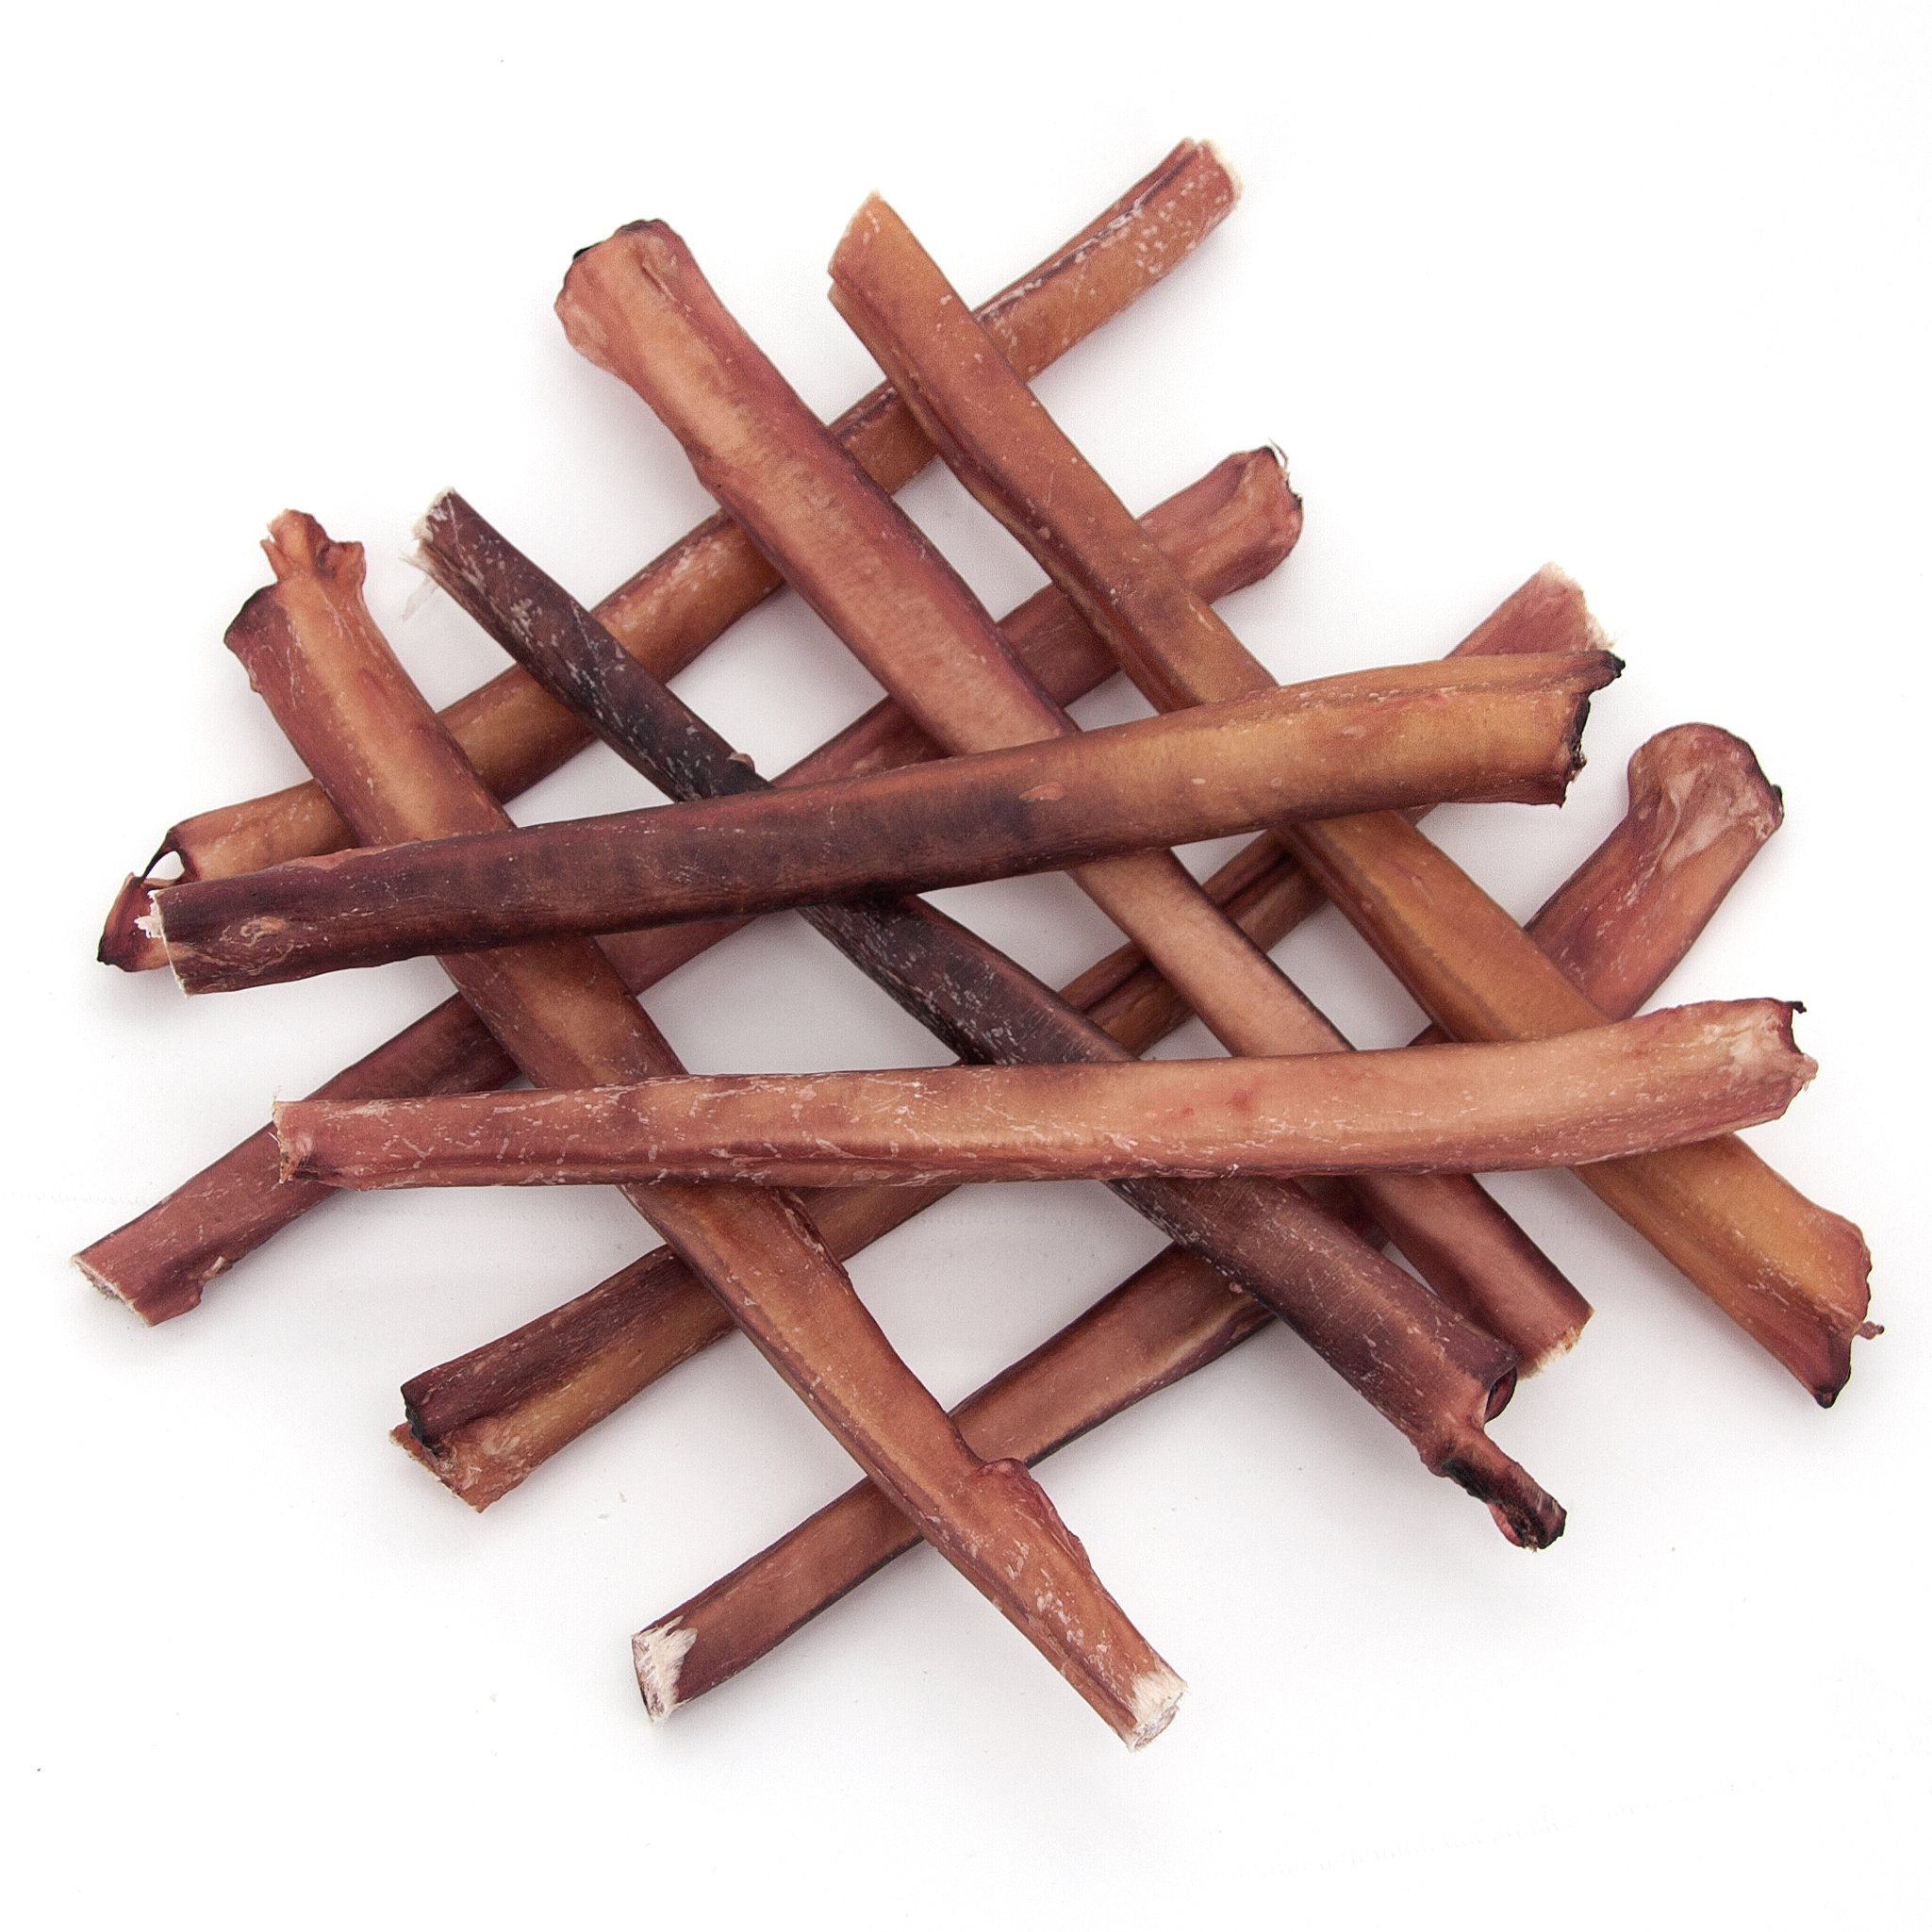 GigaBite Odor-Free Bully Sticks - USDA & FDA Certified All Natural, Free Range Beef Pizzle Dog Treat - by Best Pet Supplies